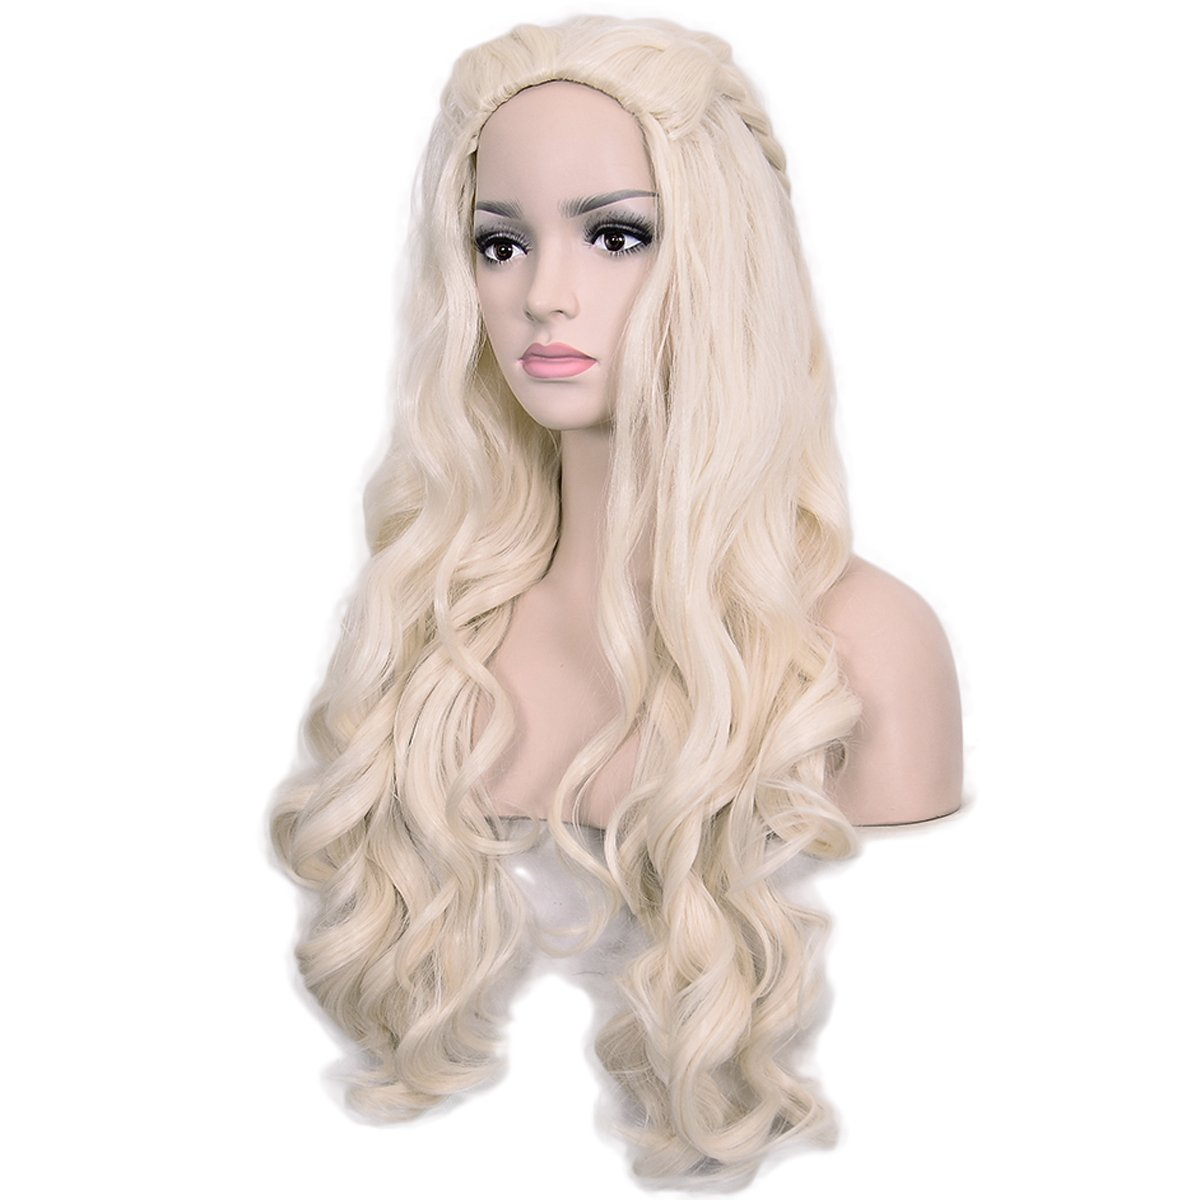 Amazon.com: Deifor Long Curly Wave Synthetic Hair with Braids for Daenerys Targaryen Costume Cosplay Wigs (Light Blonde): Beauty